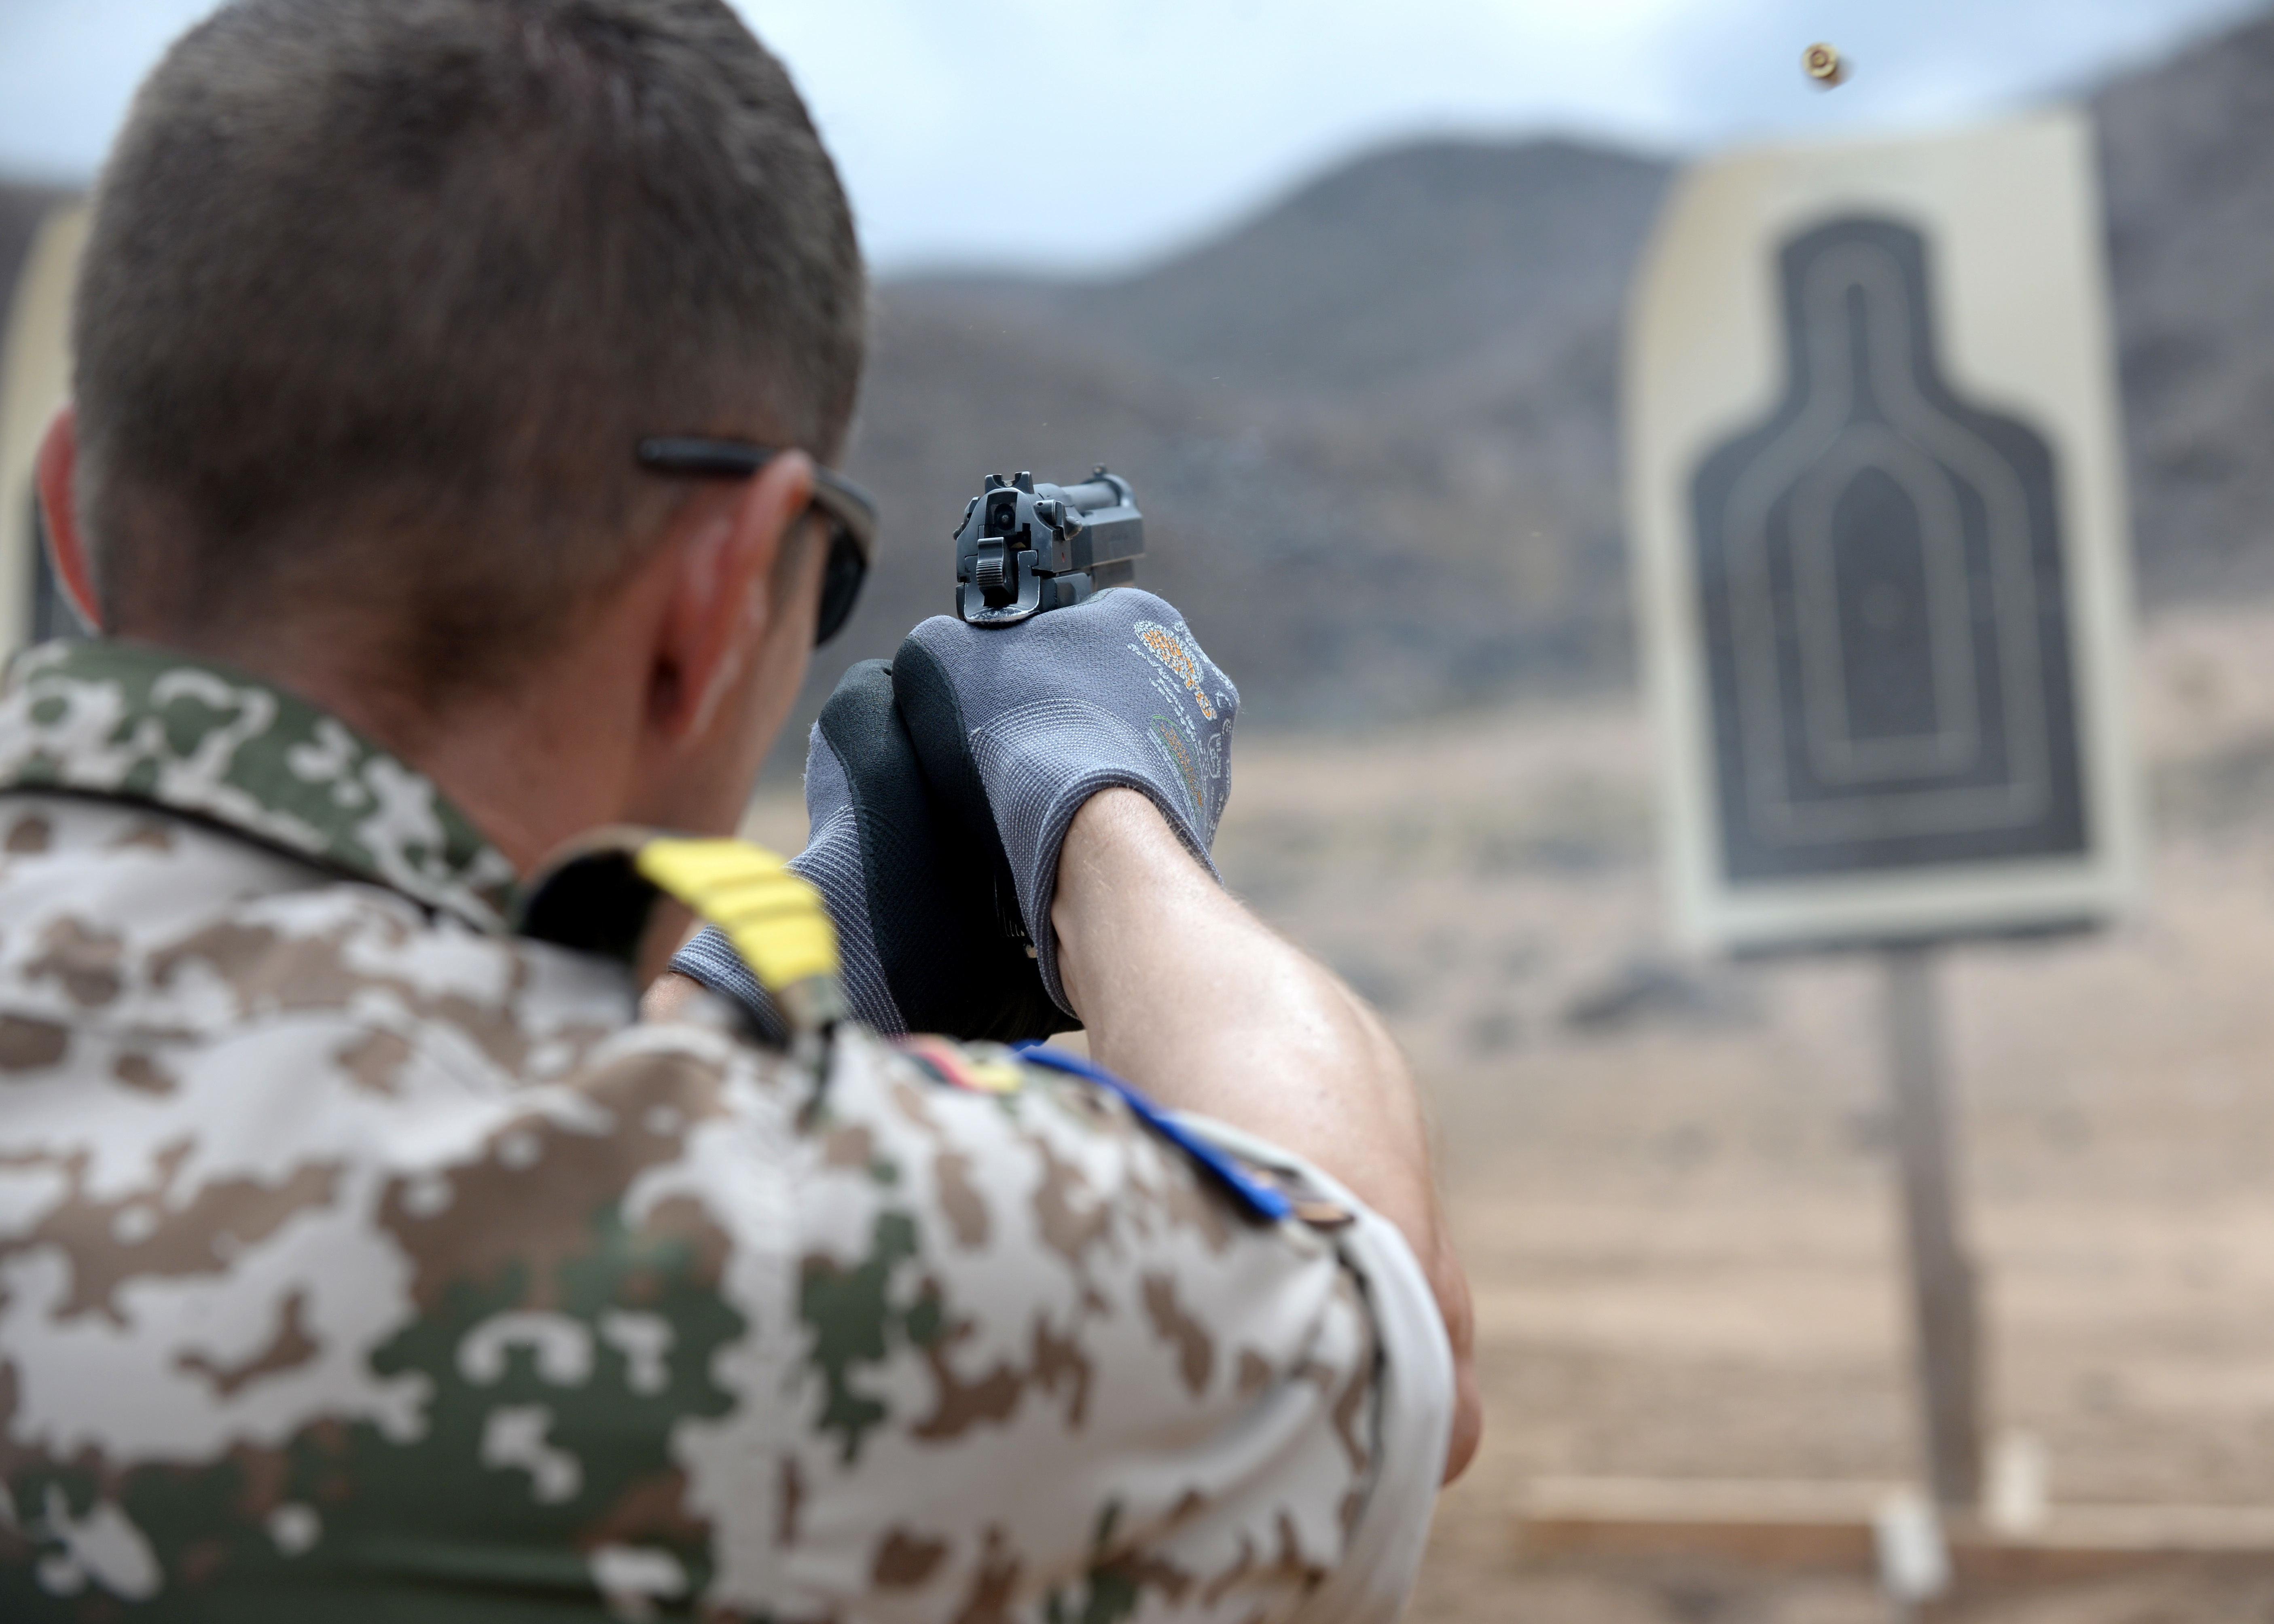 A Combined Joint Task Force-Horn of Africa foreign liaison officer from Germany fires a Beretta M9 pistol during weapons familiarization at the Djibouti Range Complex, Arta, Djibouti, Feb. 16, 2019. The course gave the foreign liaison officers an insight on the Beretta M9 pistol and stance techniques used by U.S. military members. (U.S. Air Force photo by Staff Sgt. Franklin R. Ramos)